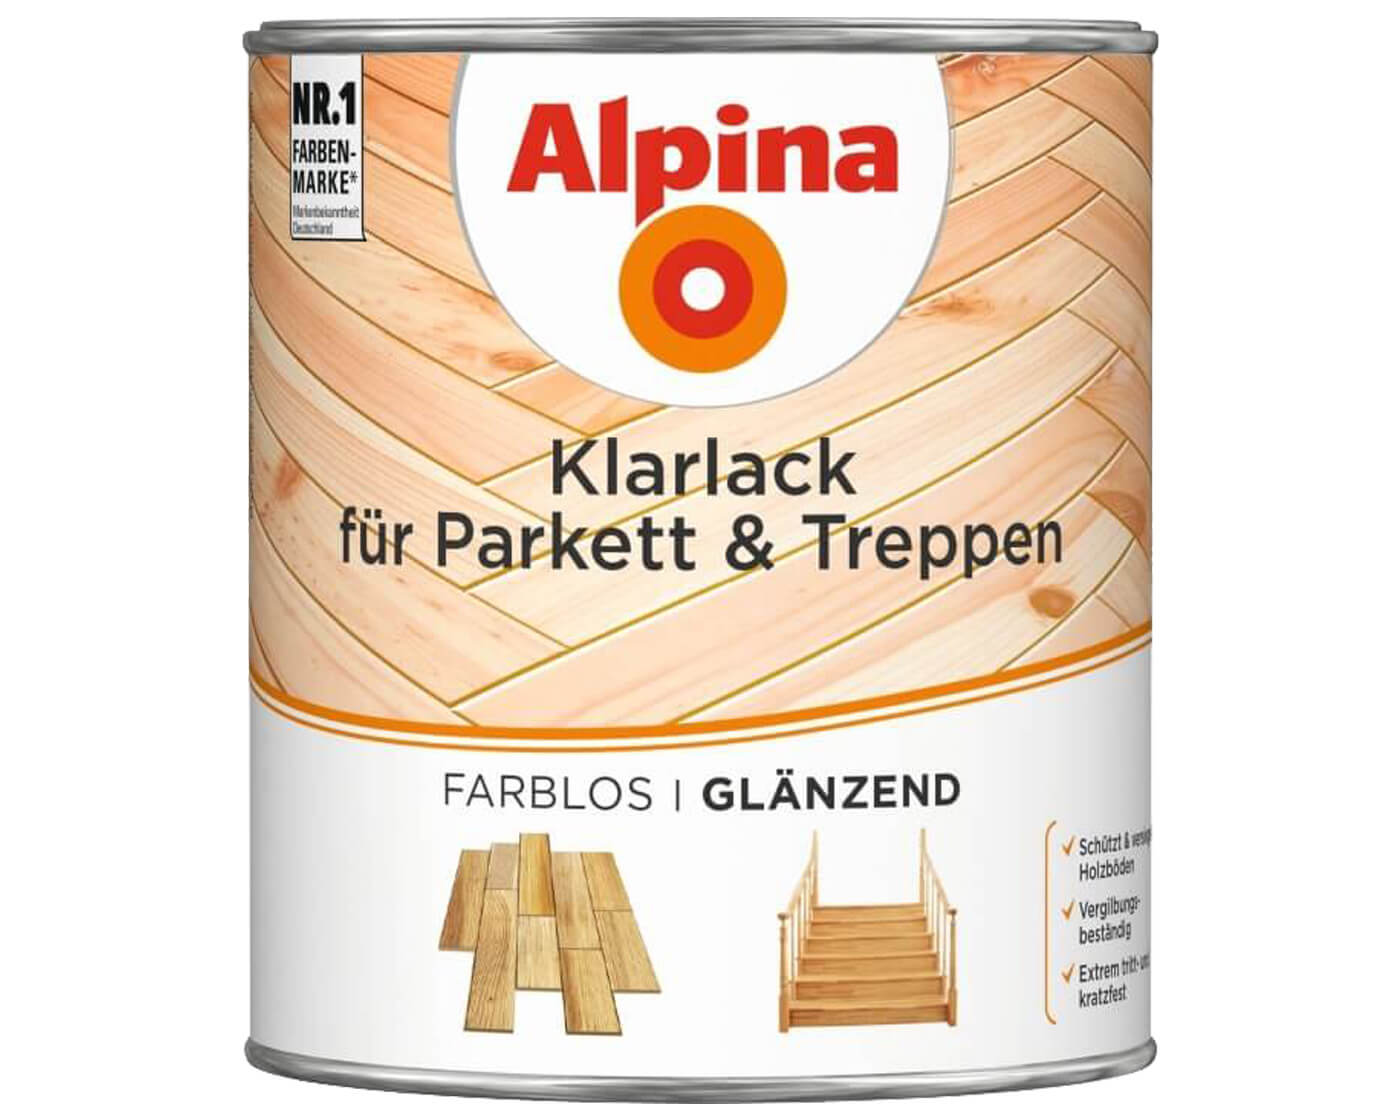 alpina klarlack parkett treppen farblos acryl lack markenbaumarkt24. Black Bedroom Furniture Sets. Home Design Ideas